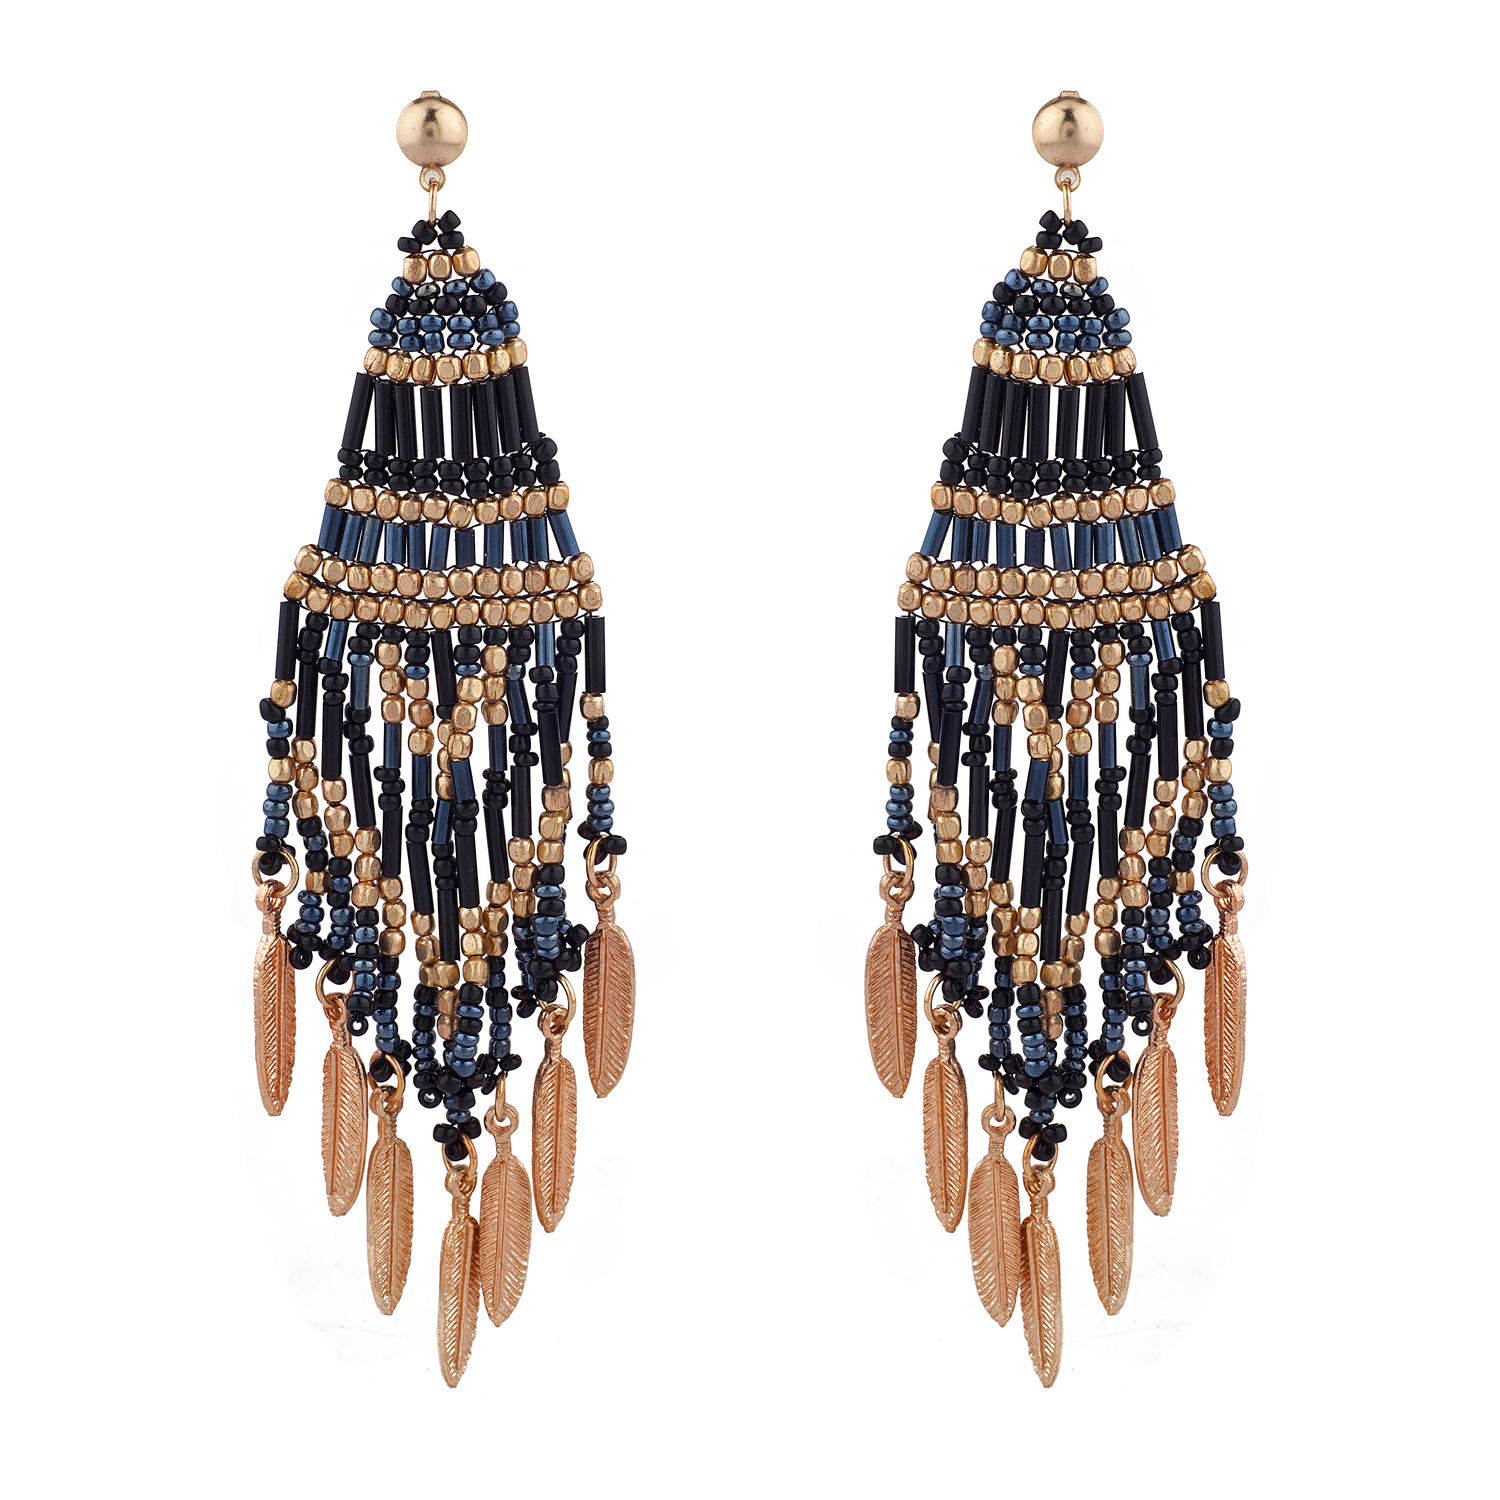 Boho Festival Black Gold Tone Seed Bead Statement Earrings